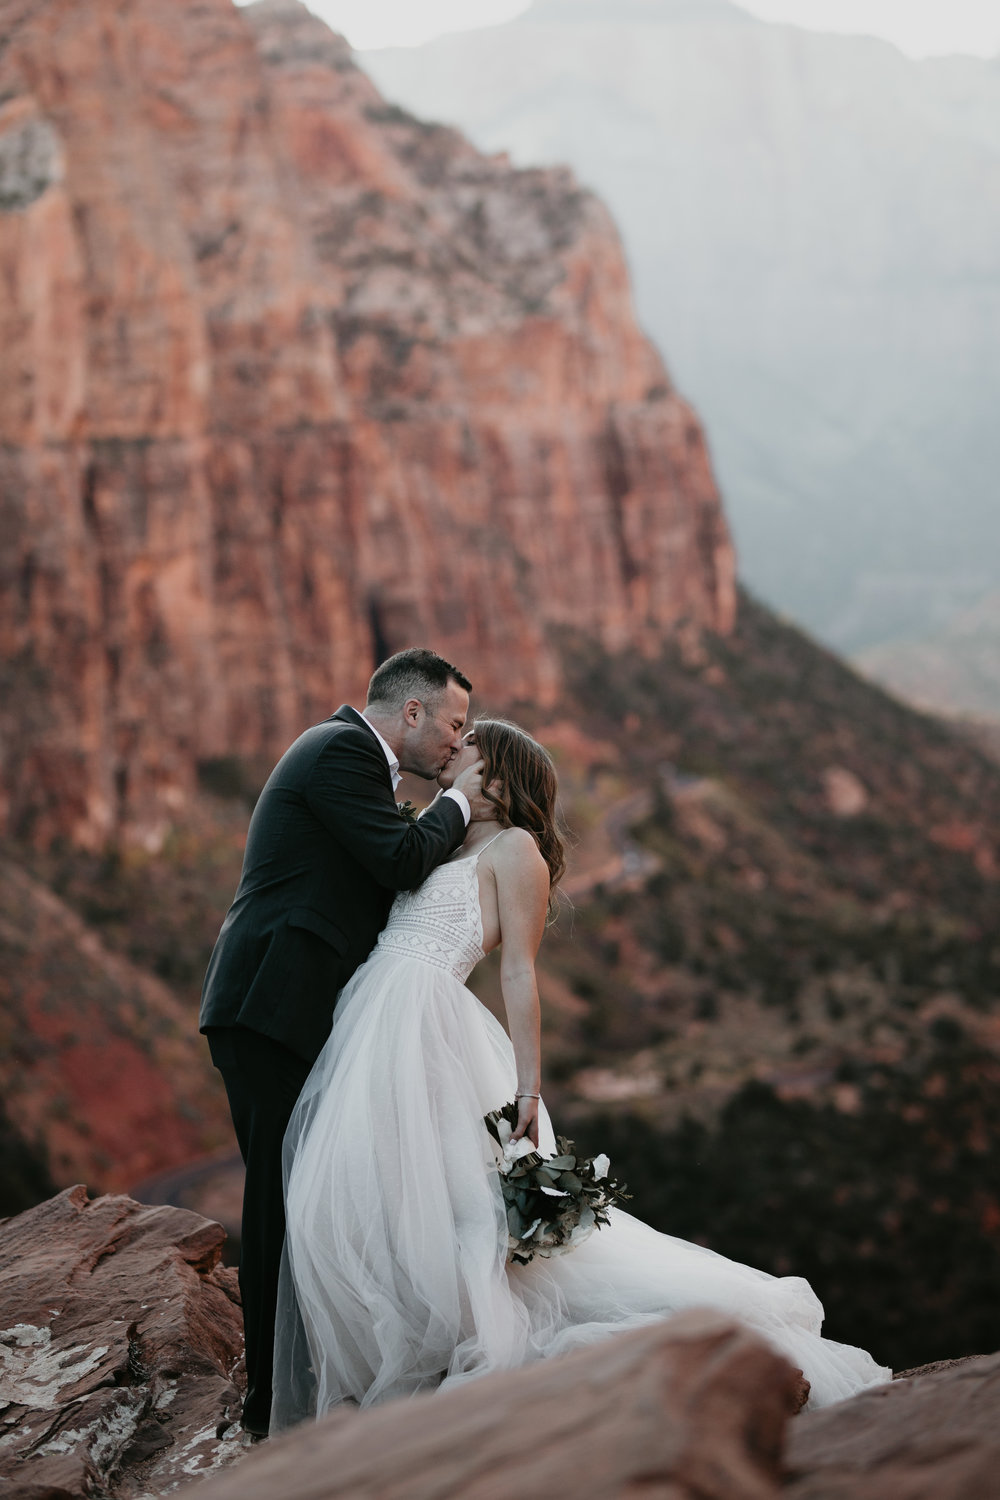 zion-national-park-elopement-photographer-adventure-adventurous-elopement-photographer-photography-in-national-parks-utah-red-rock-sunset-canyon-trail-destination-intimate-wedding-photos-20.jpg